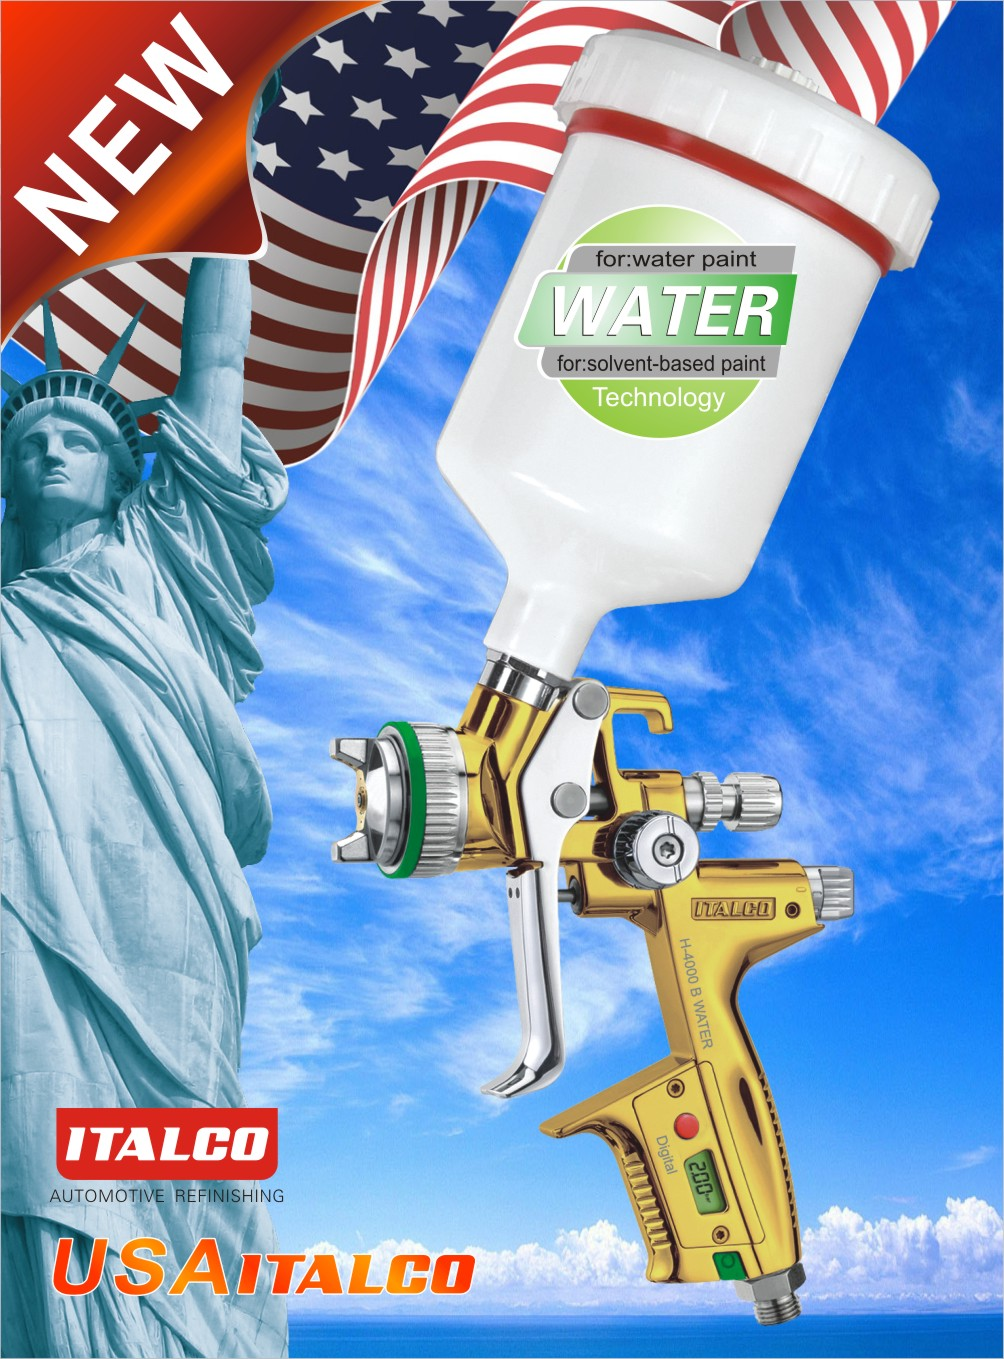 H-4000 B DIGITAL Water-borne spray gun